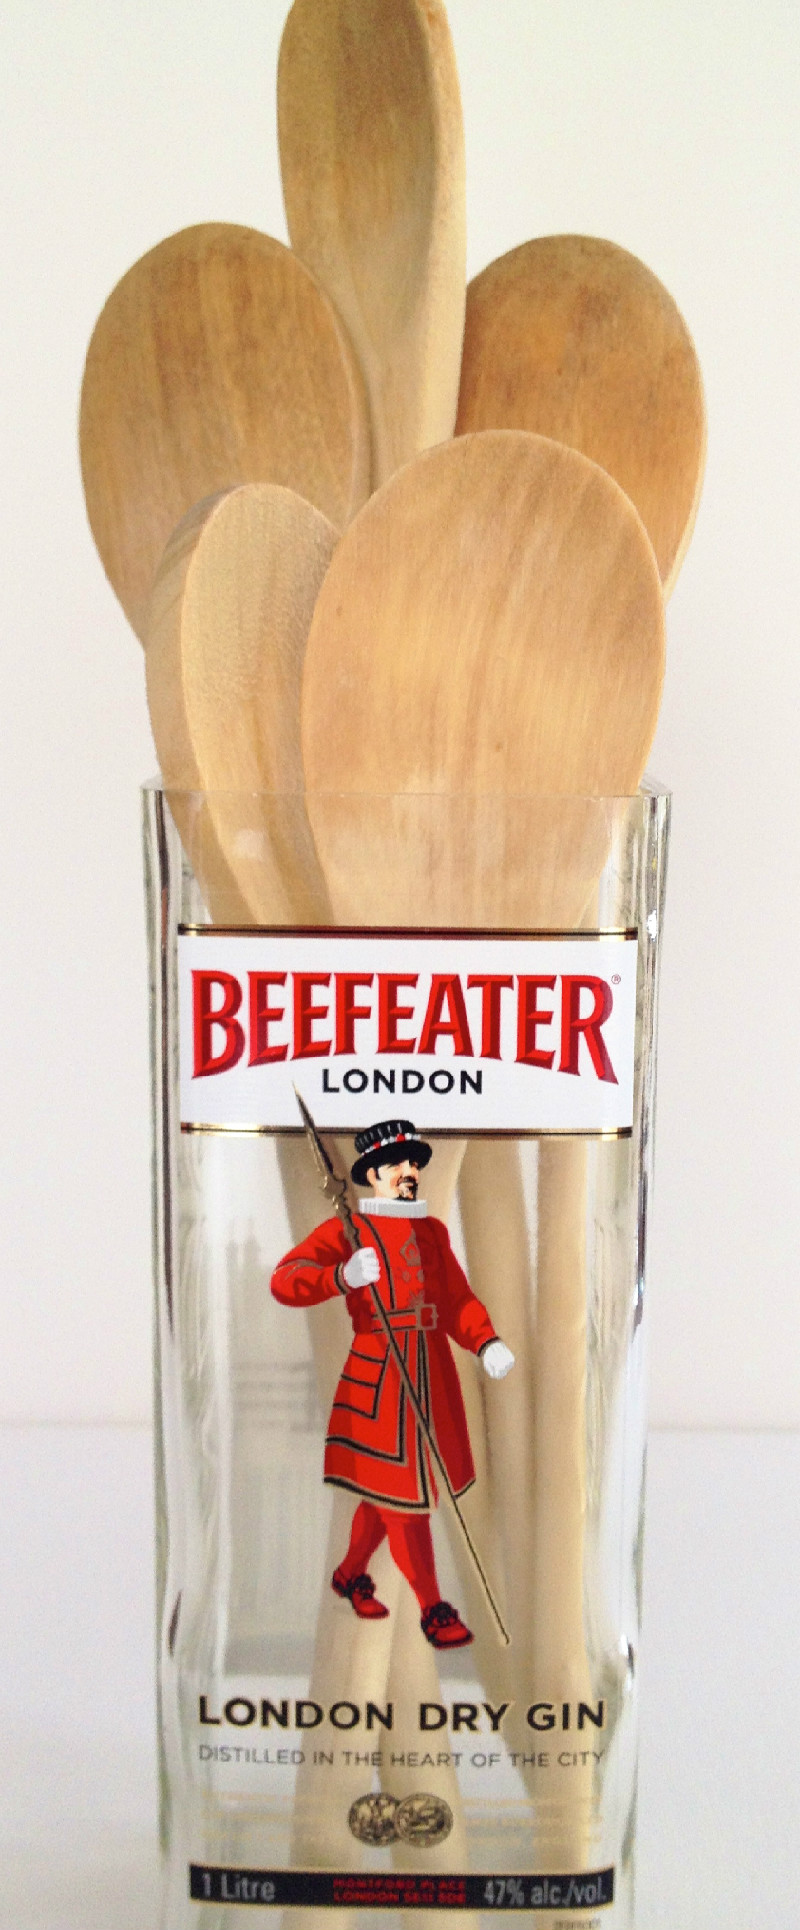 BeefeaterFront_spoons.jpg